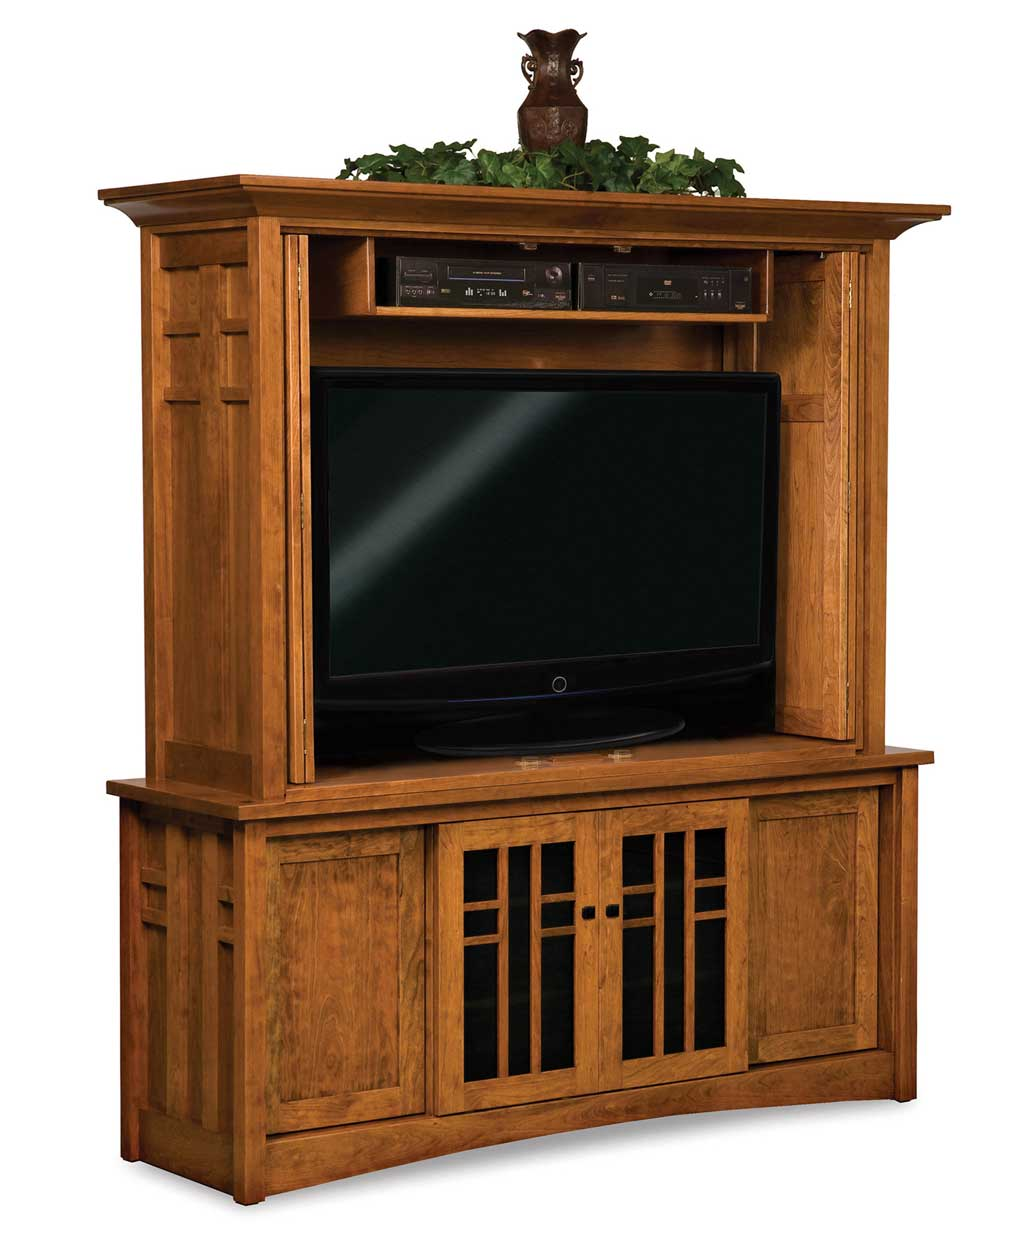 Media Cabinets Furniture: Kascade Media TV Cabinet With Bi-Fold Doors